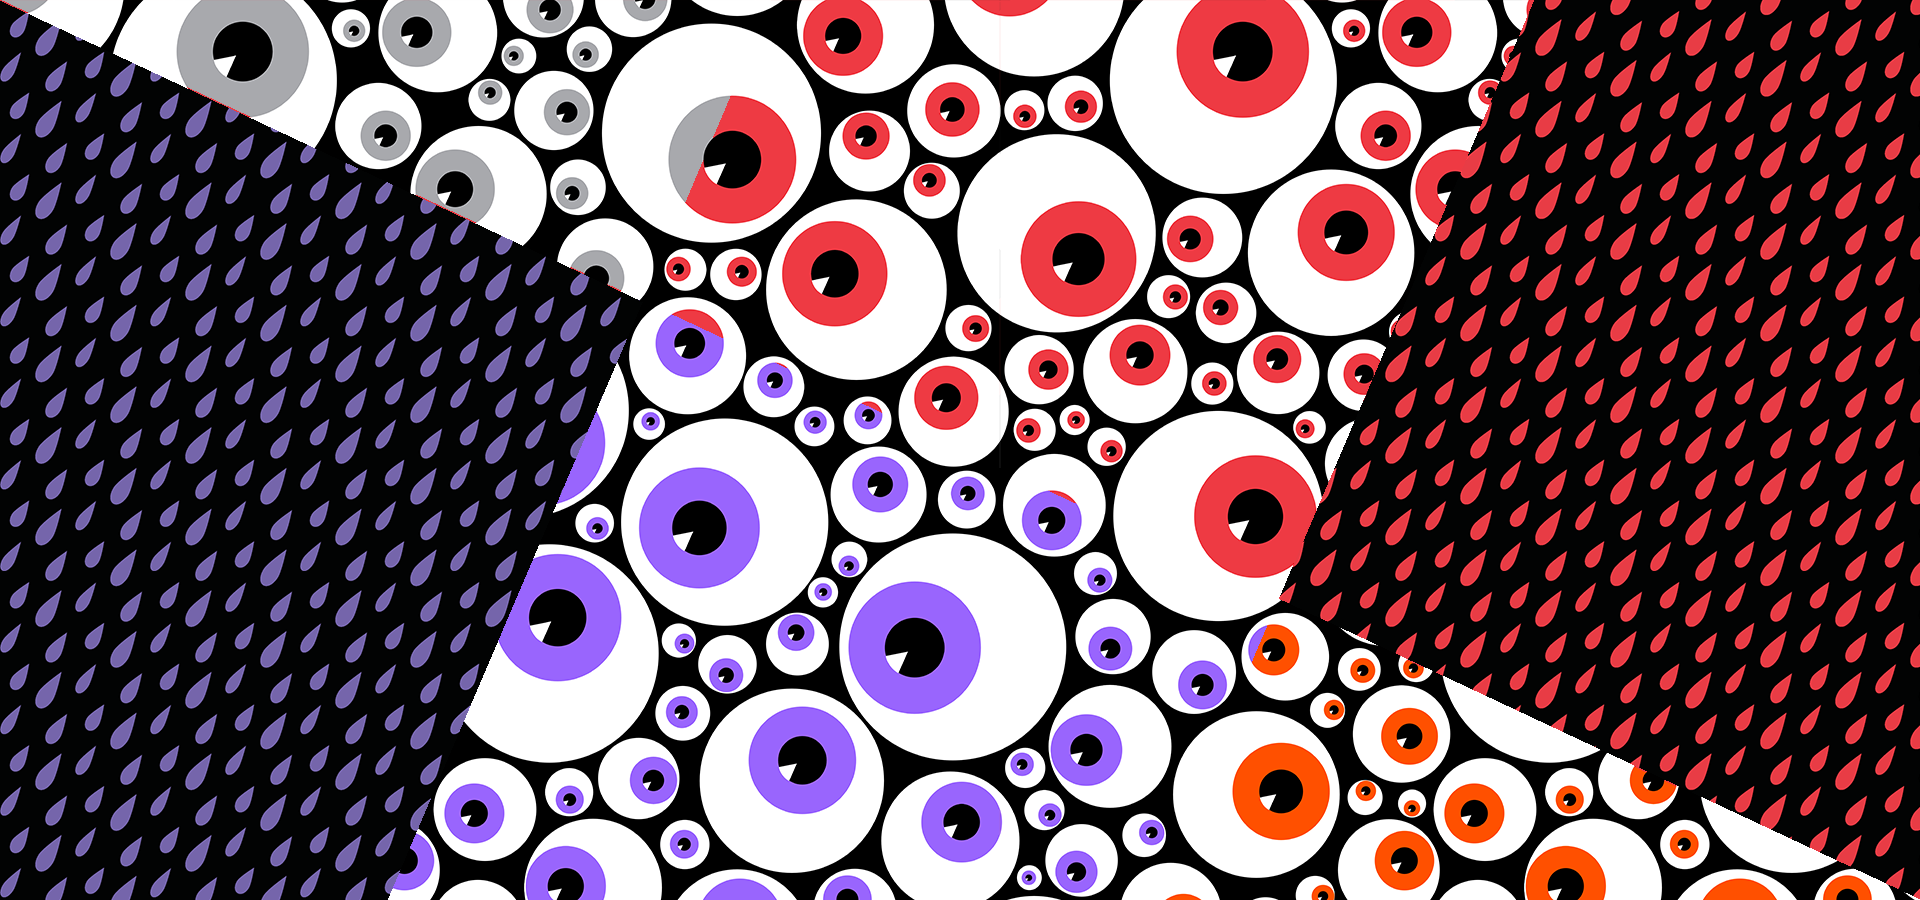 red eyeballs blood rain pattern collection petits pixels